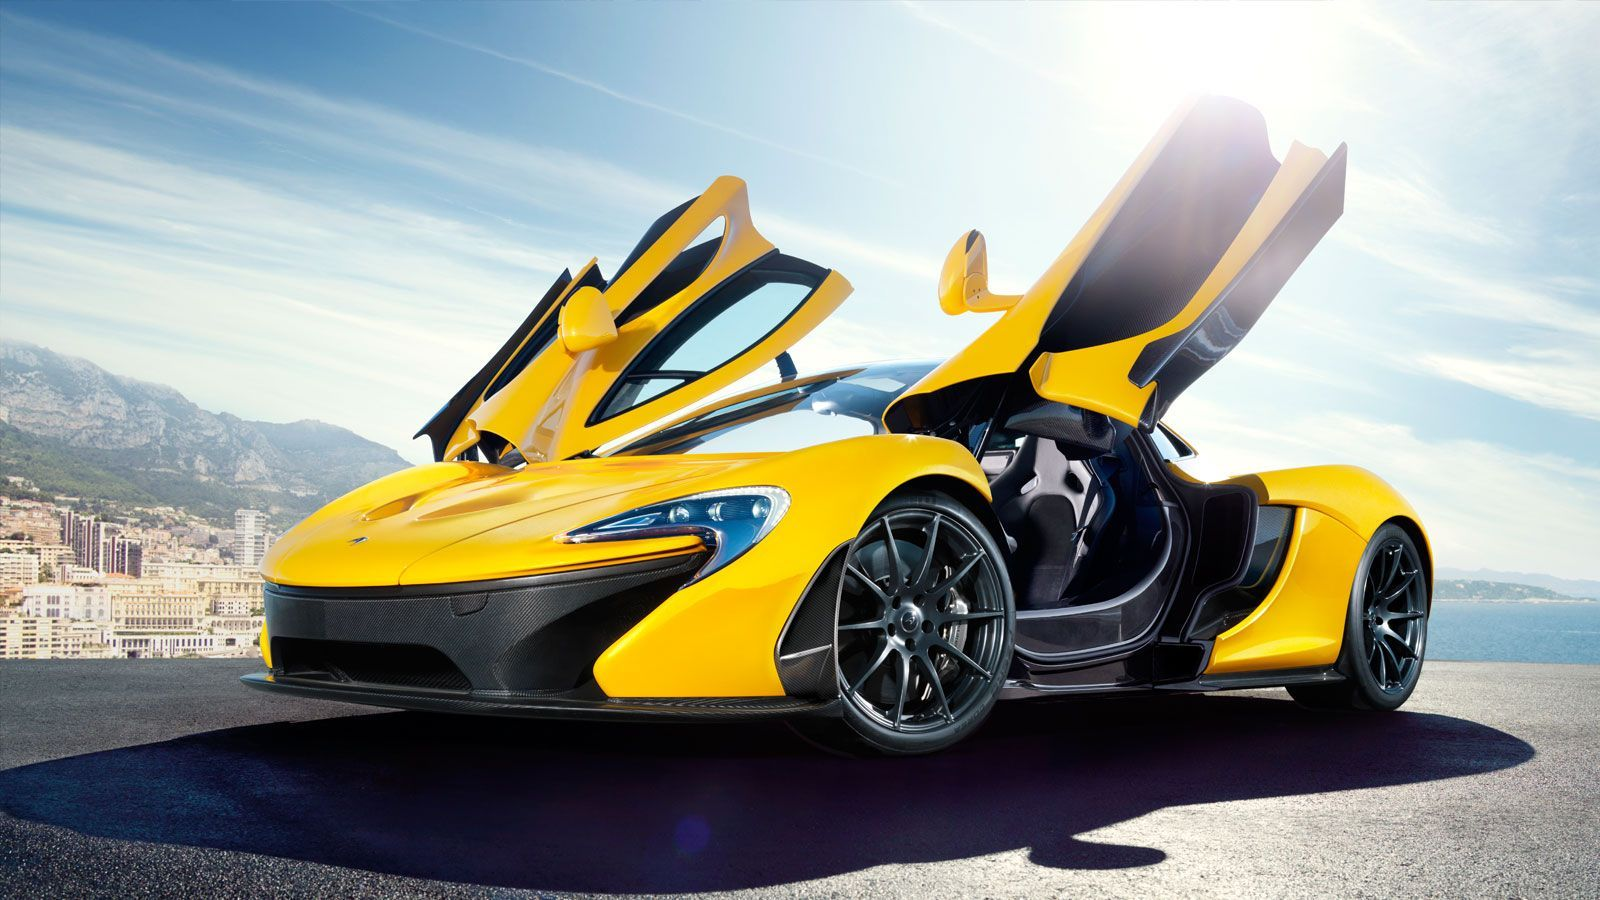 Let The Sun Shine In Mclaren Formula 1 The Mclaren P1 Borne Out Of 50 Years Racing Experience Super Sport Cars Sports Car Car Wallpapers